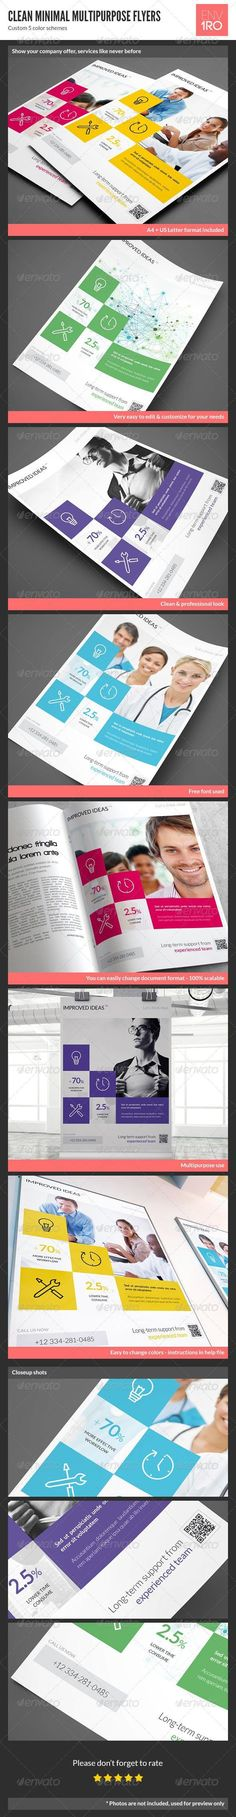 ◳ [Nulled]◰ Clean Minimal Multipurpose Flyers Vol. Supplemental Health Insurance, Health Insurance Companies, Business Company, Business Flyers, Promotion, Identity, Commercial Insurance, Business Flyer Templates, Information Graphics